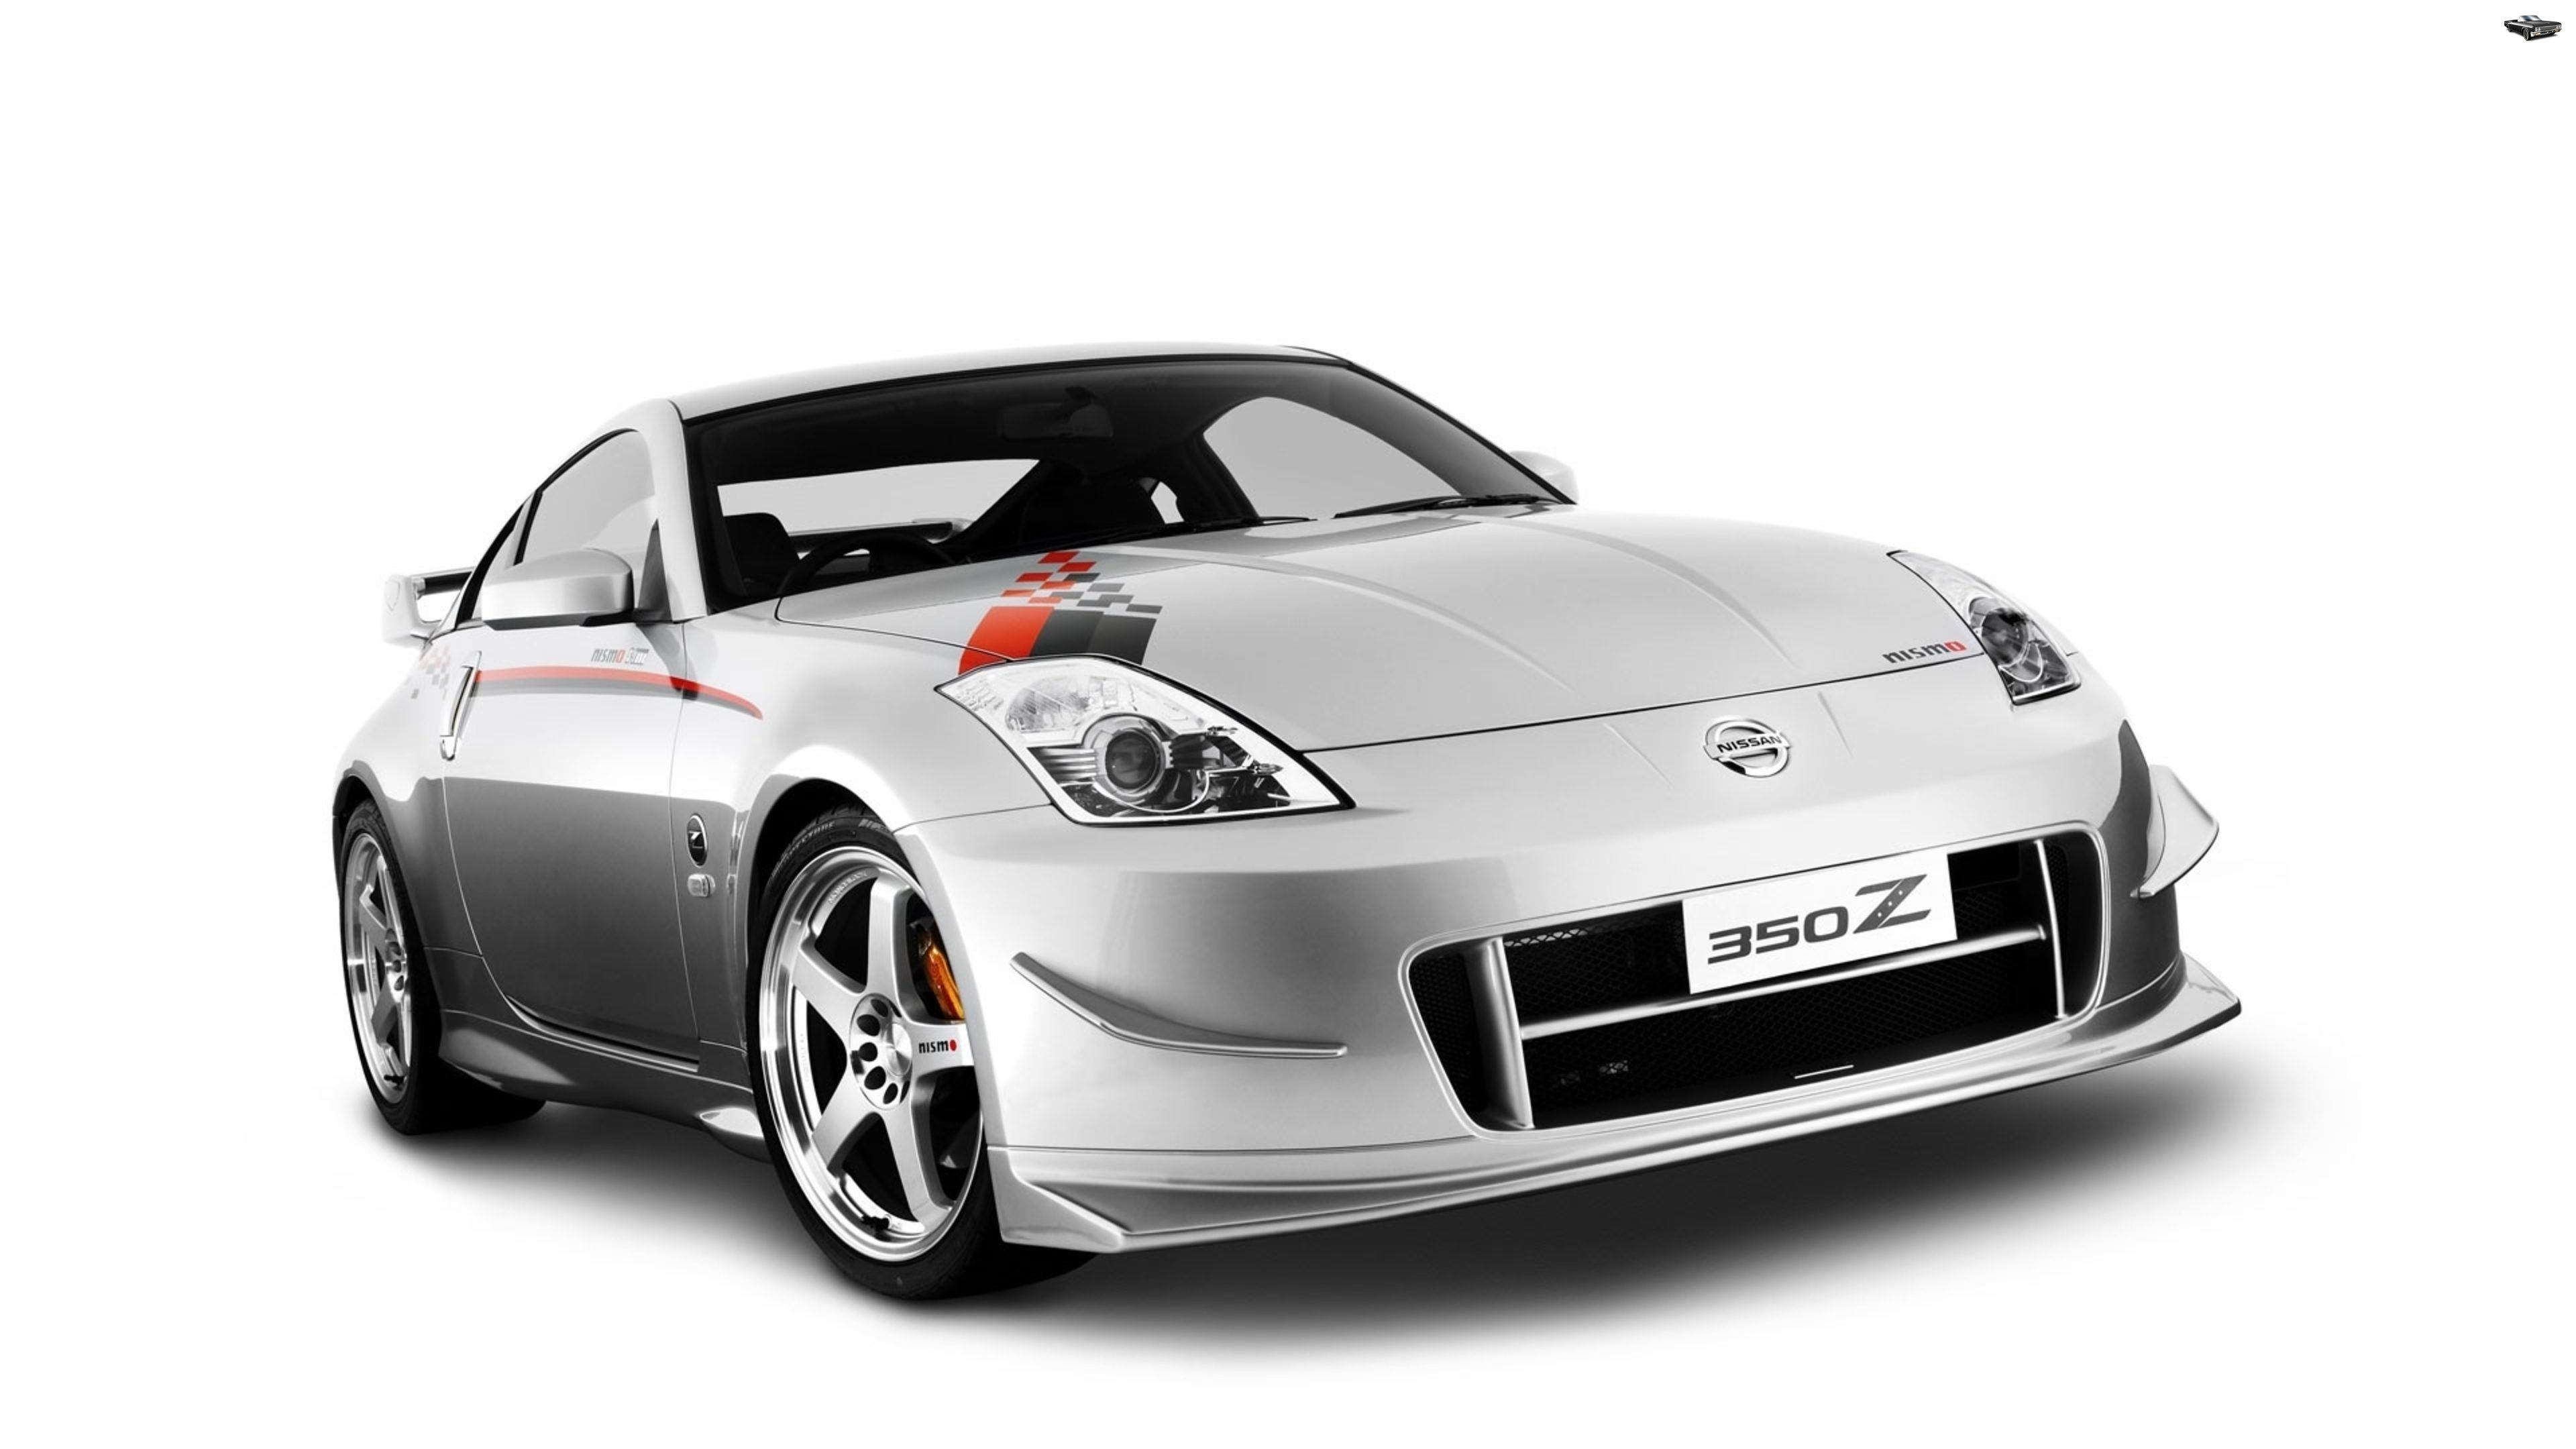 Res: 3840x2160, Nissan Z-car, Technology, Tech, Bumper, Nismo HD Wallpaper, Cars Picture,  Background and Image